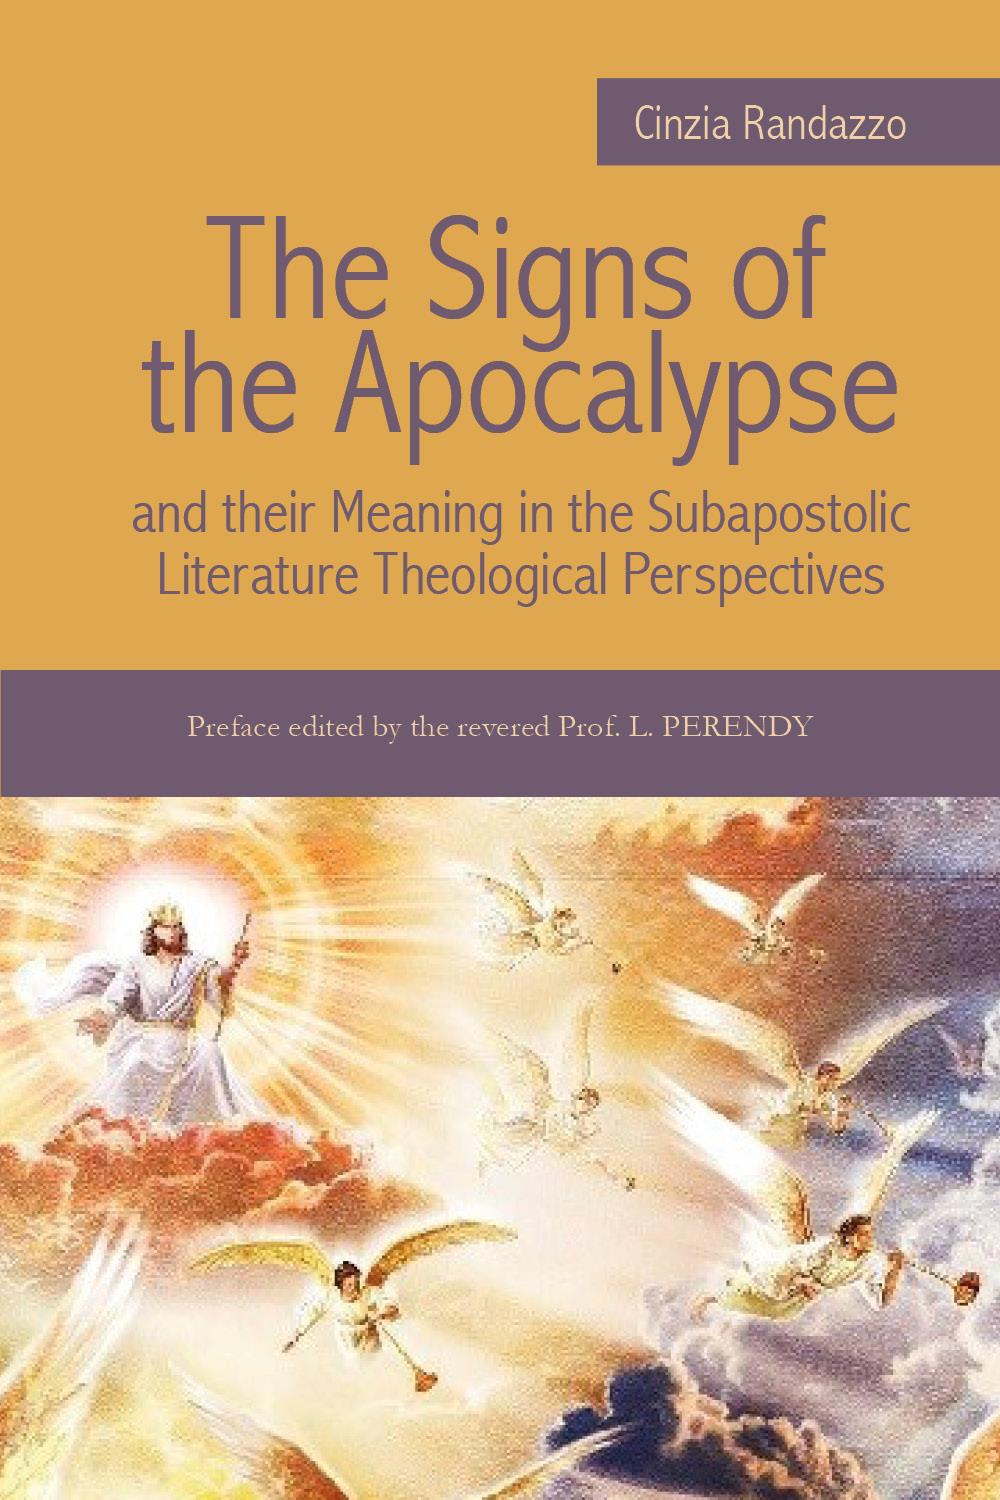 The Signs of the Apocalypse and their Meaning in the  Subapostolic Literature Theological Perspectives